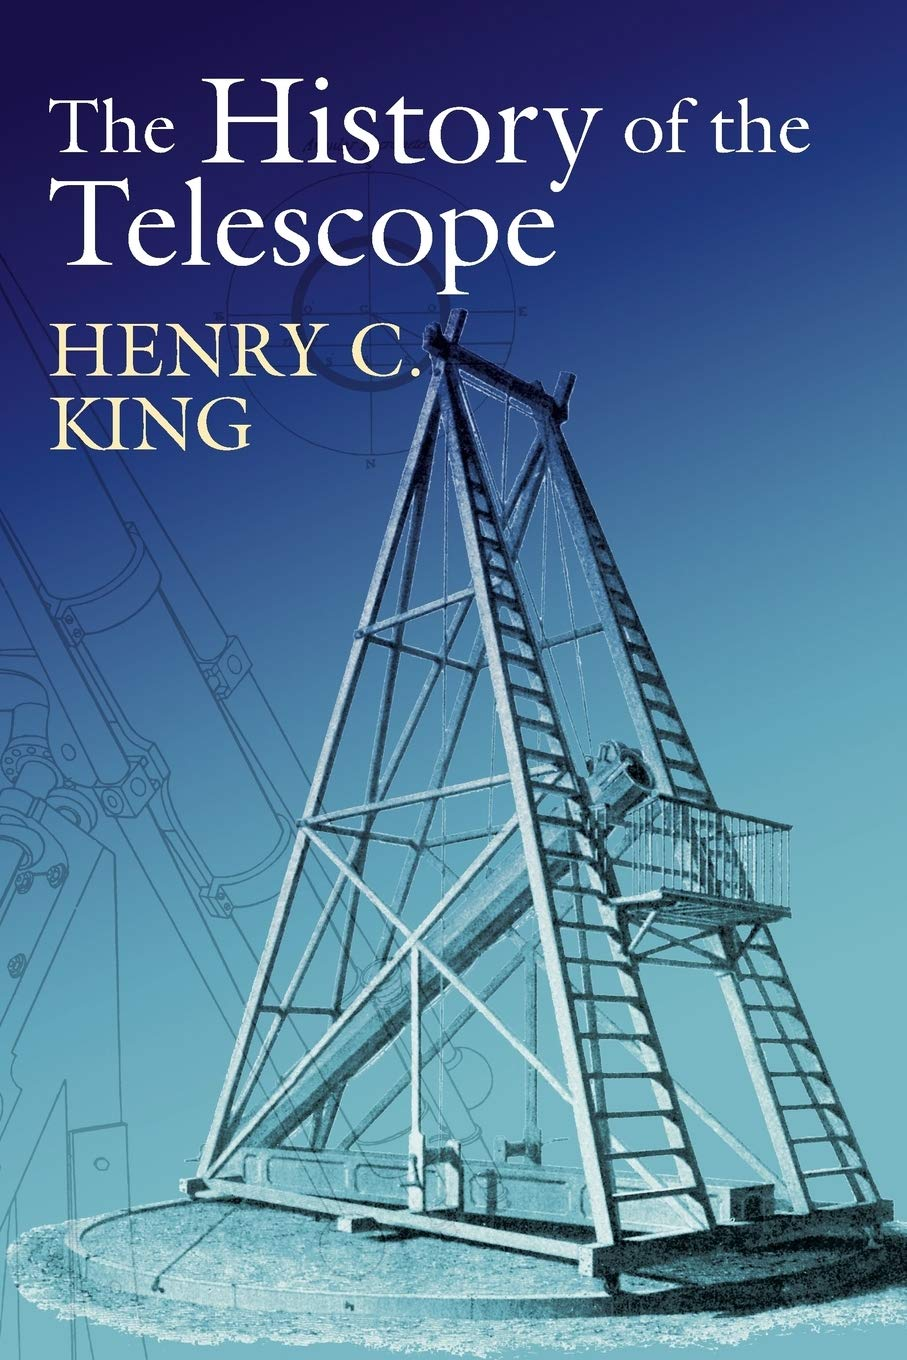 Download The History Of The Telescope (Dover Books On Astronomy) 